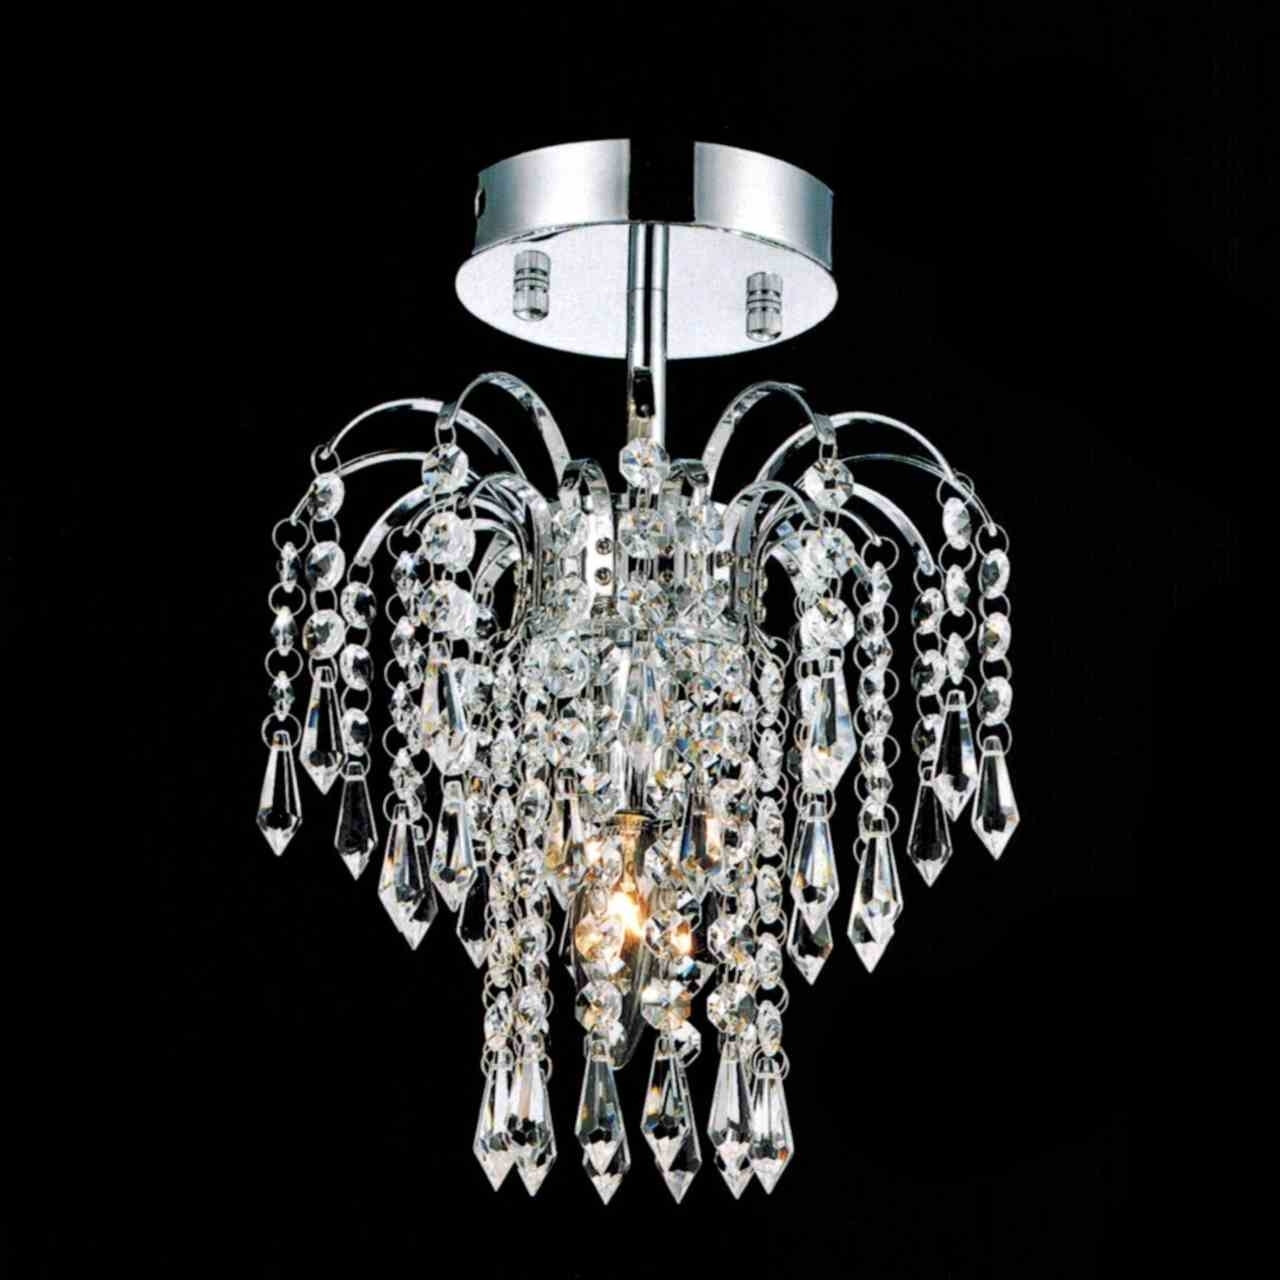 Small Chrome Chandelier Intended For Best And Newest Brizzo Lighting Stores (View 8 of 15)